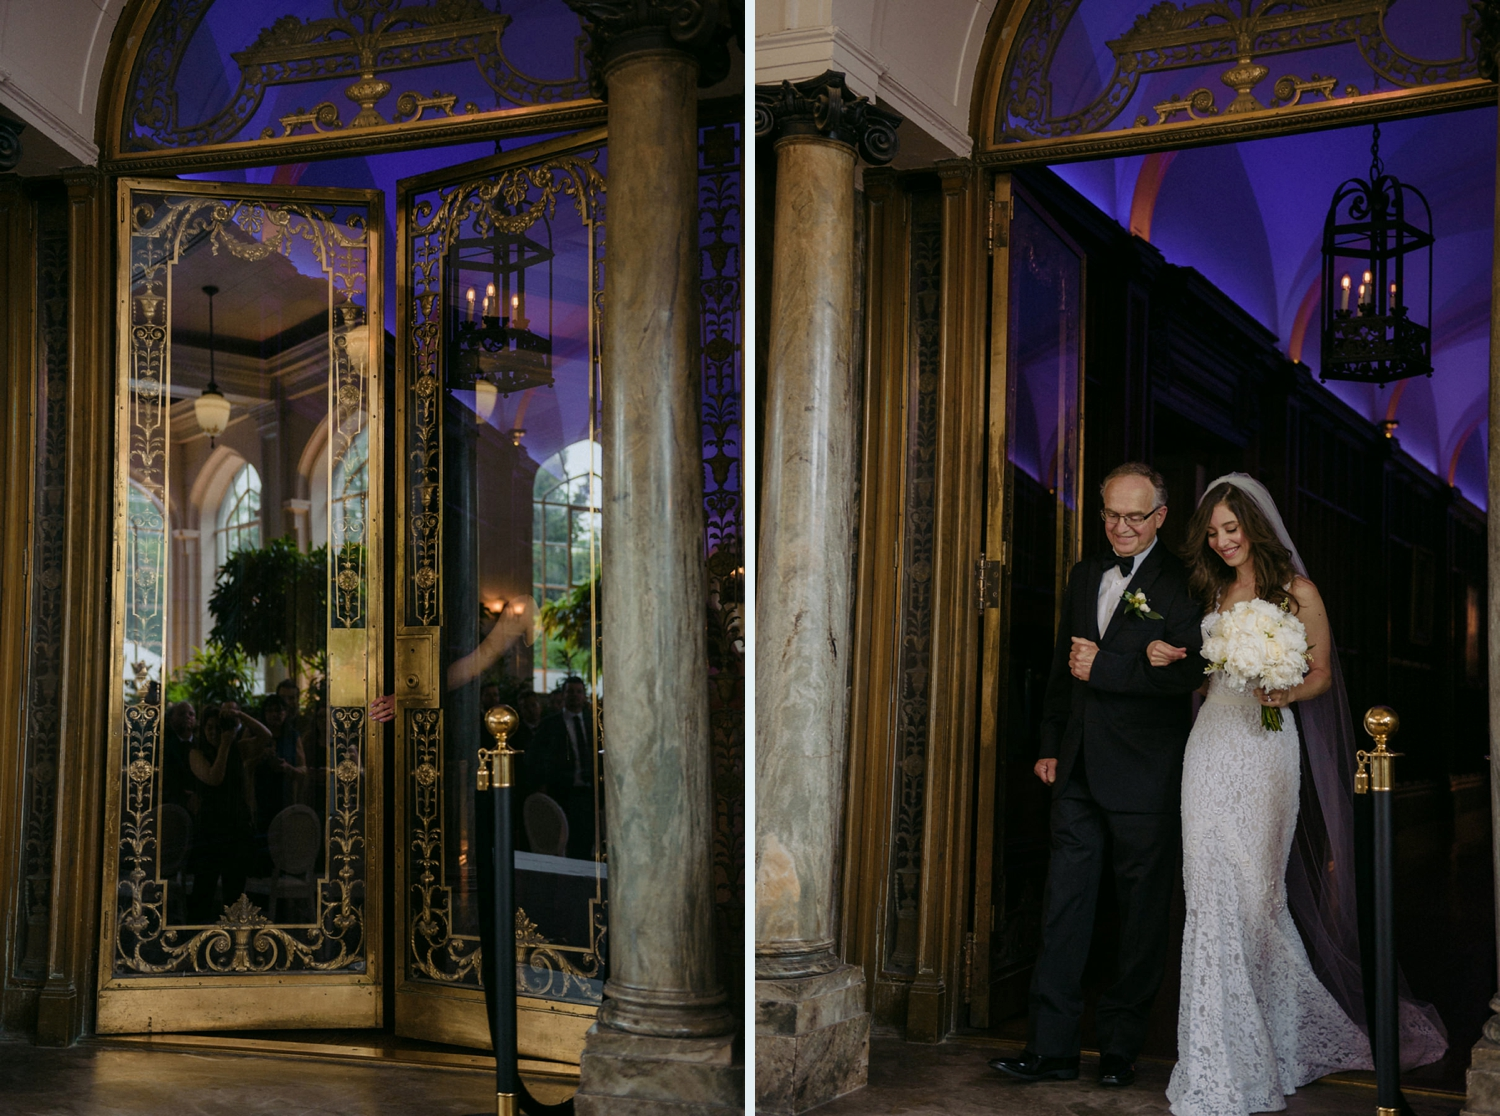 DanijelaWeddings-wedding-Toronto-CasaLoma-Berta-romantic-castle111.JPG